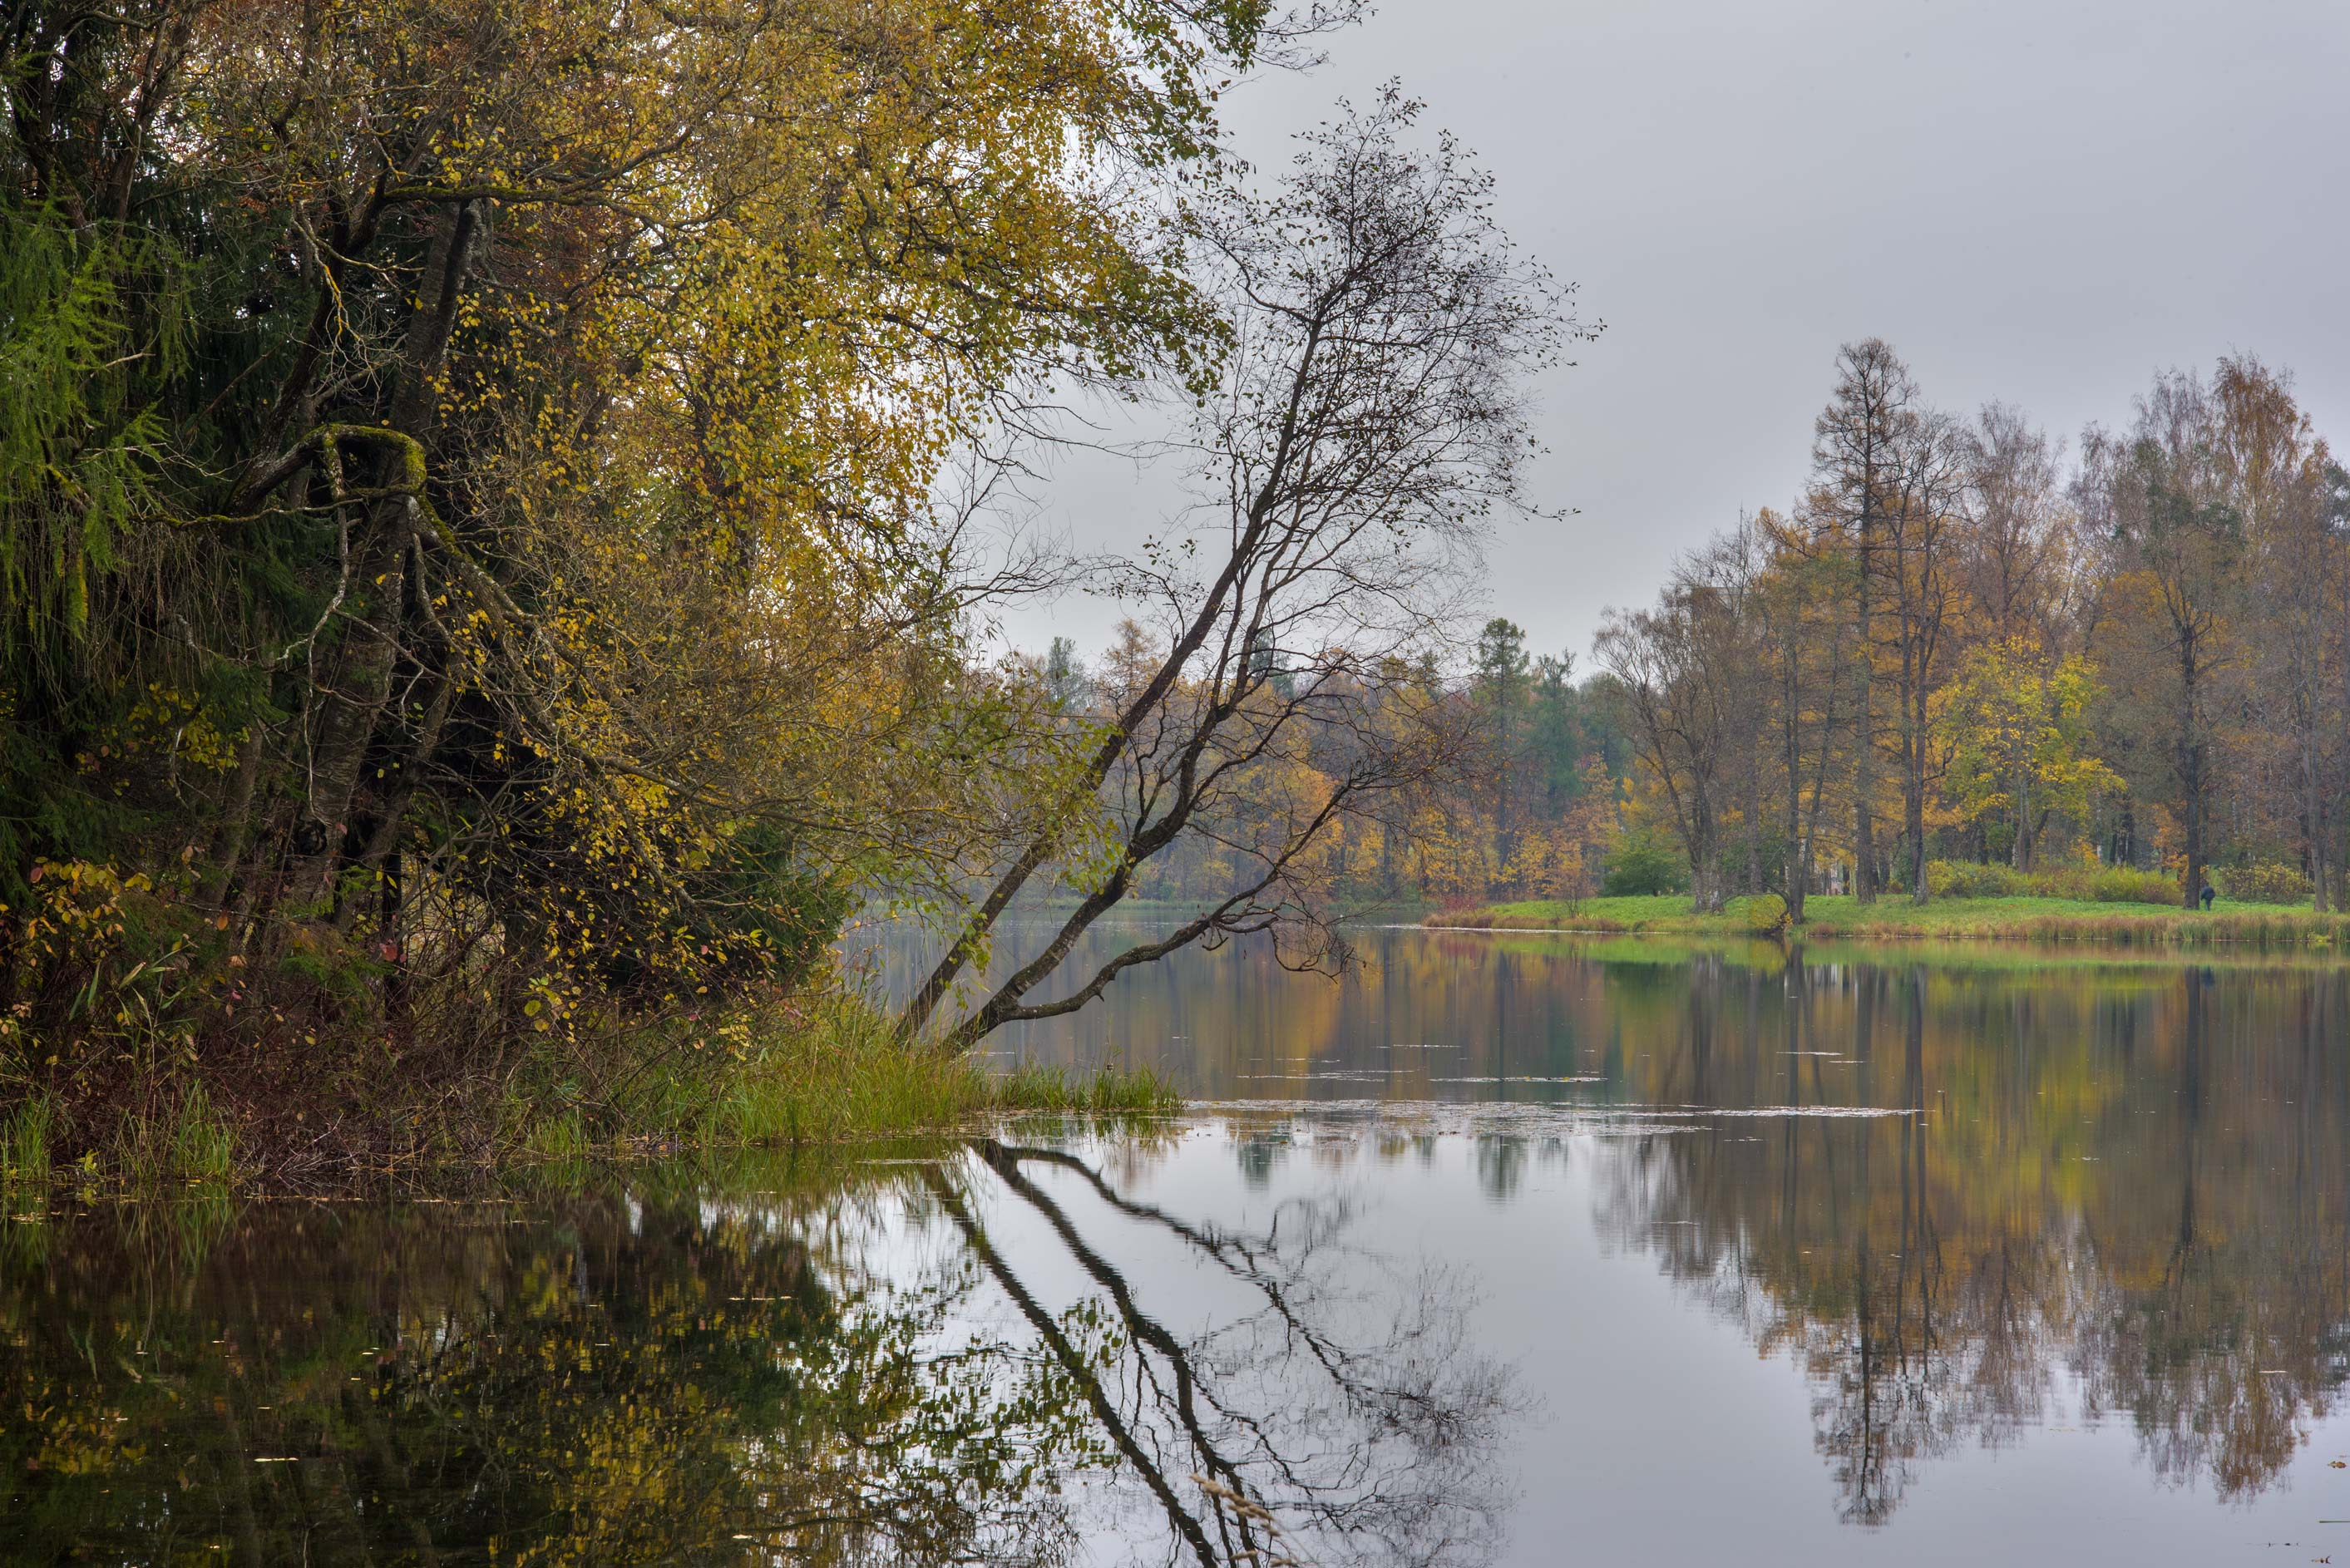 An island of Beloe Lake in Gatchina Park. Gatchina, a suburb of St.Petersburg, Russia